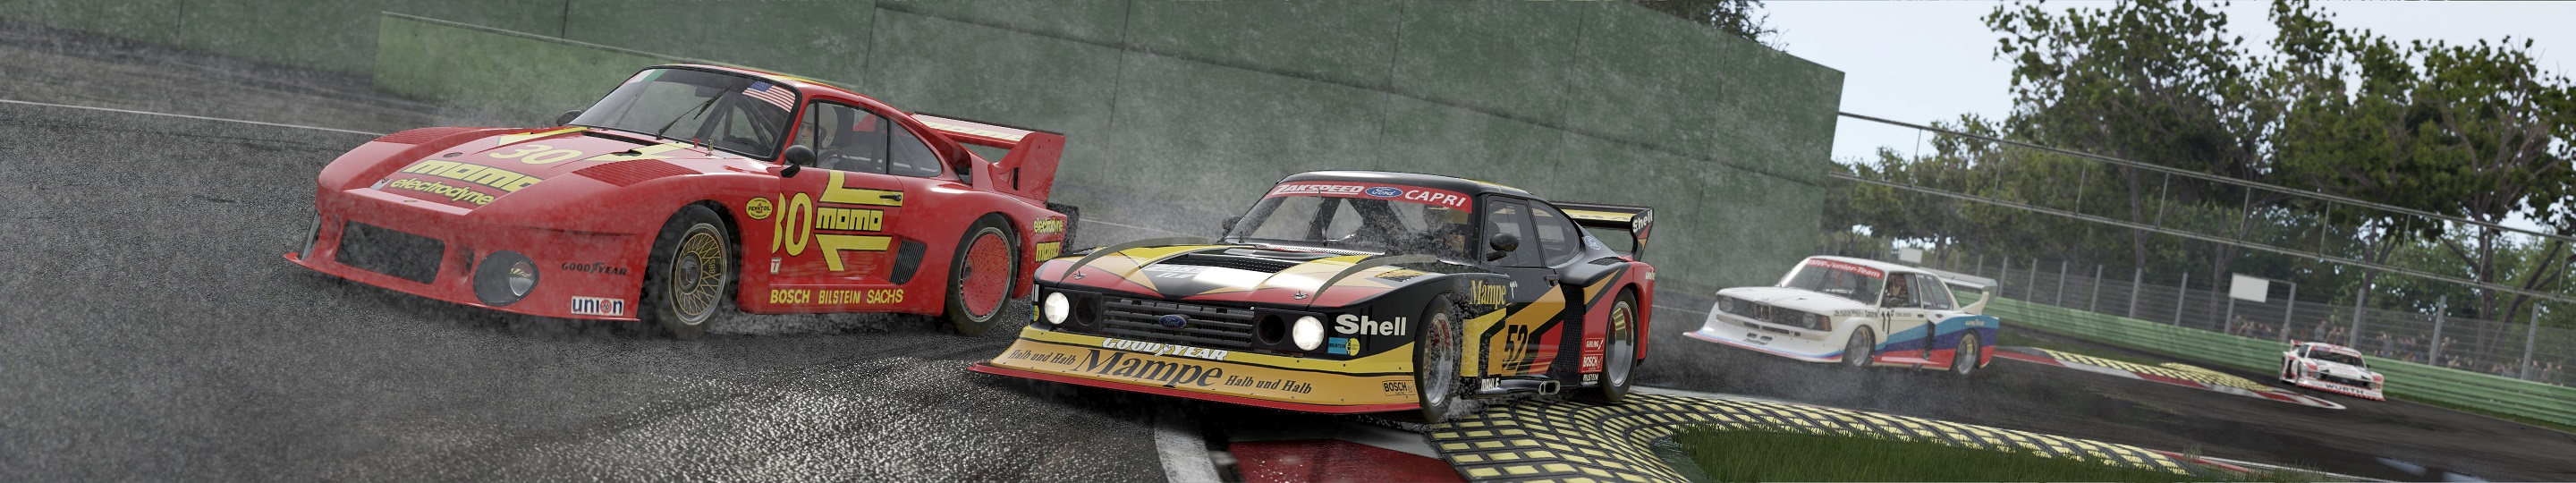 PCARS GROUP 5 2 IMOLA.jpg